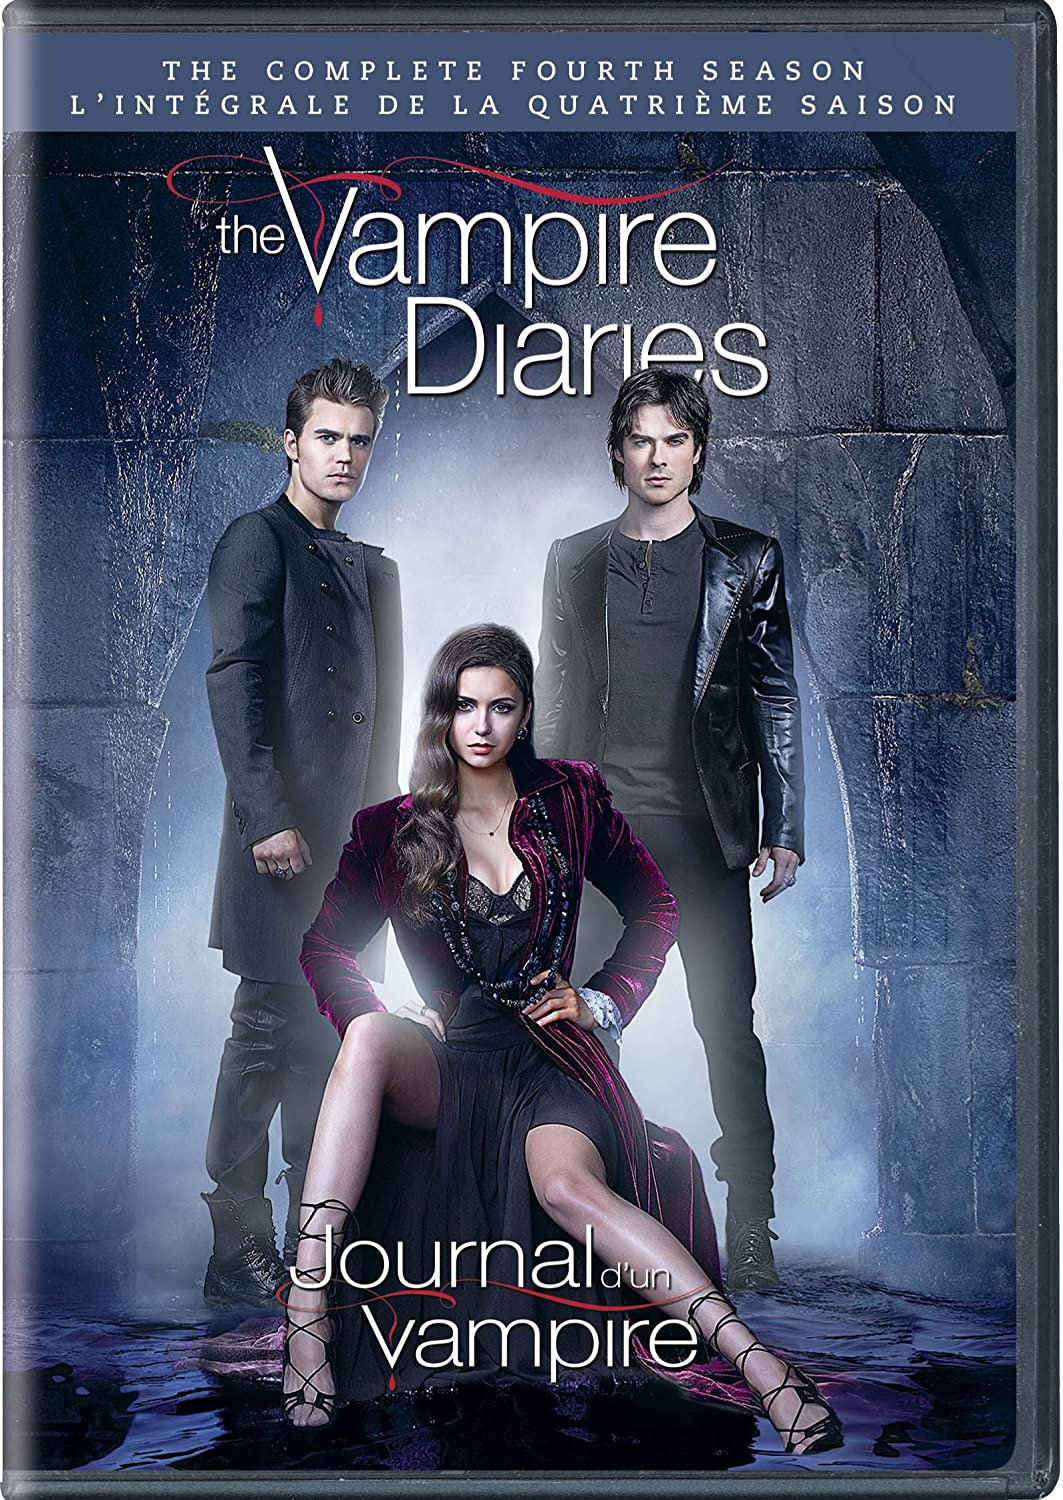 The Vampire Diaries: The Complete Fourth Season (Bilingual) L.J. Smith Nina Dobrev Paul Wesley Ian Somerhalder